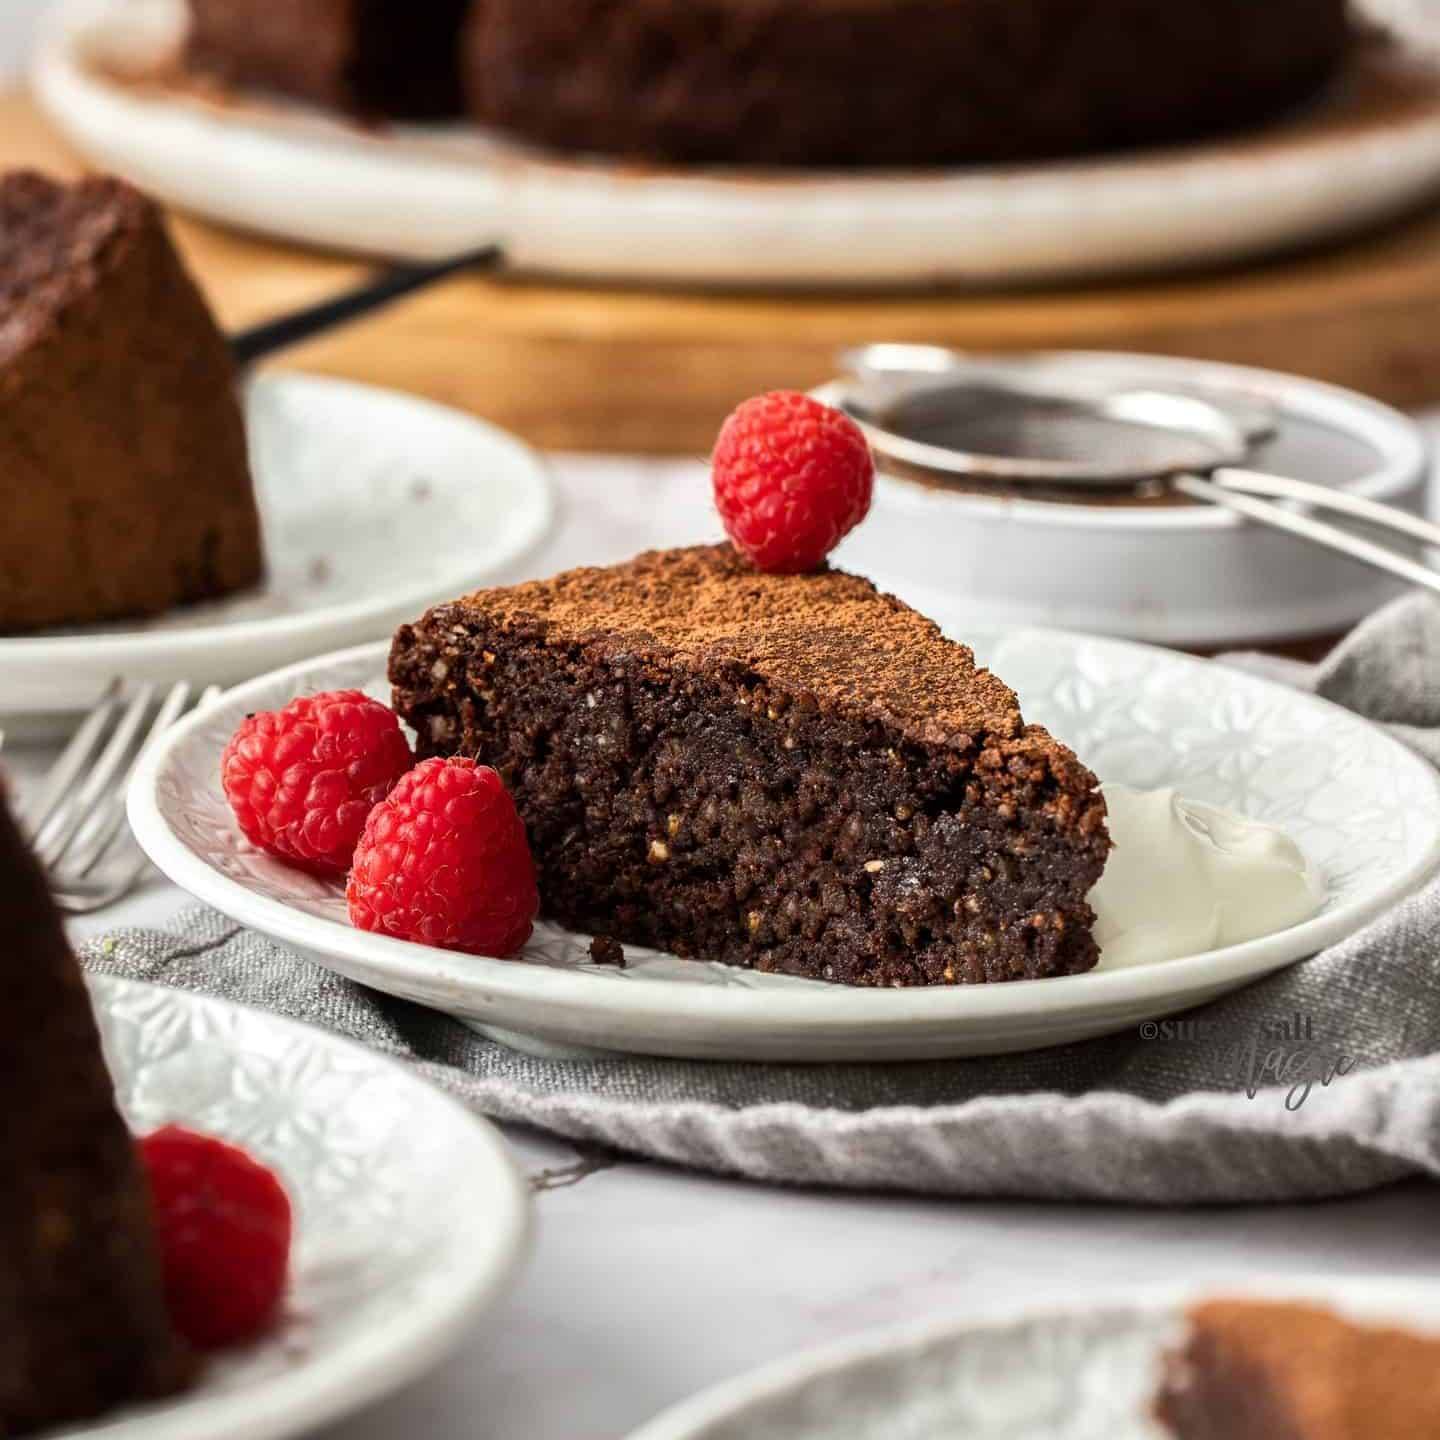 A slice of chocolate cake on a white cake plate with cream and raspberries.